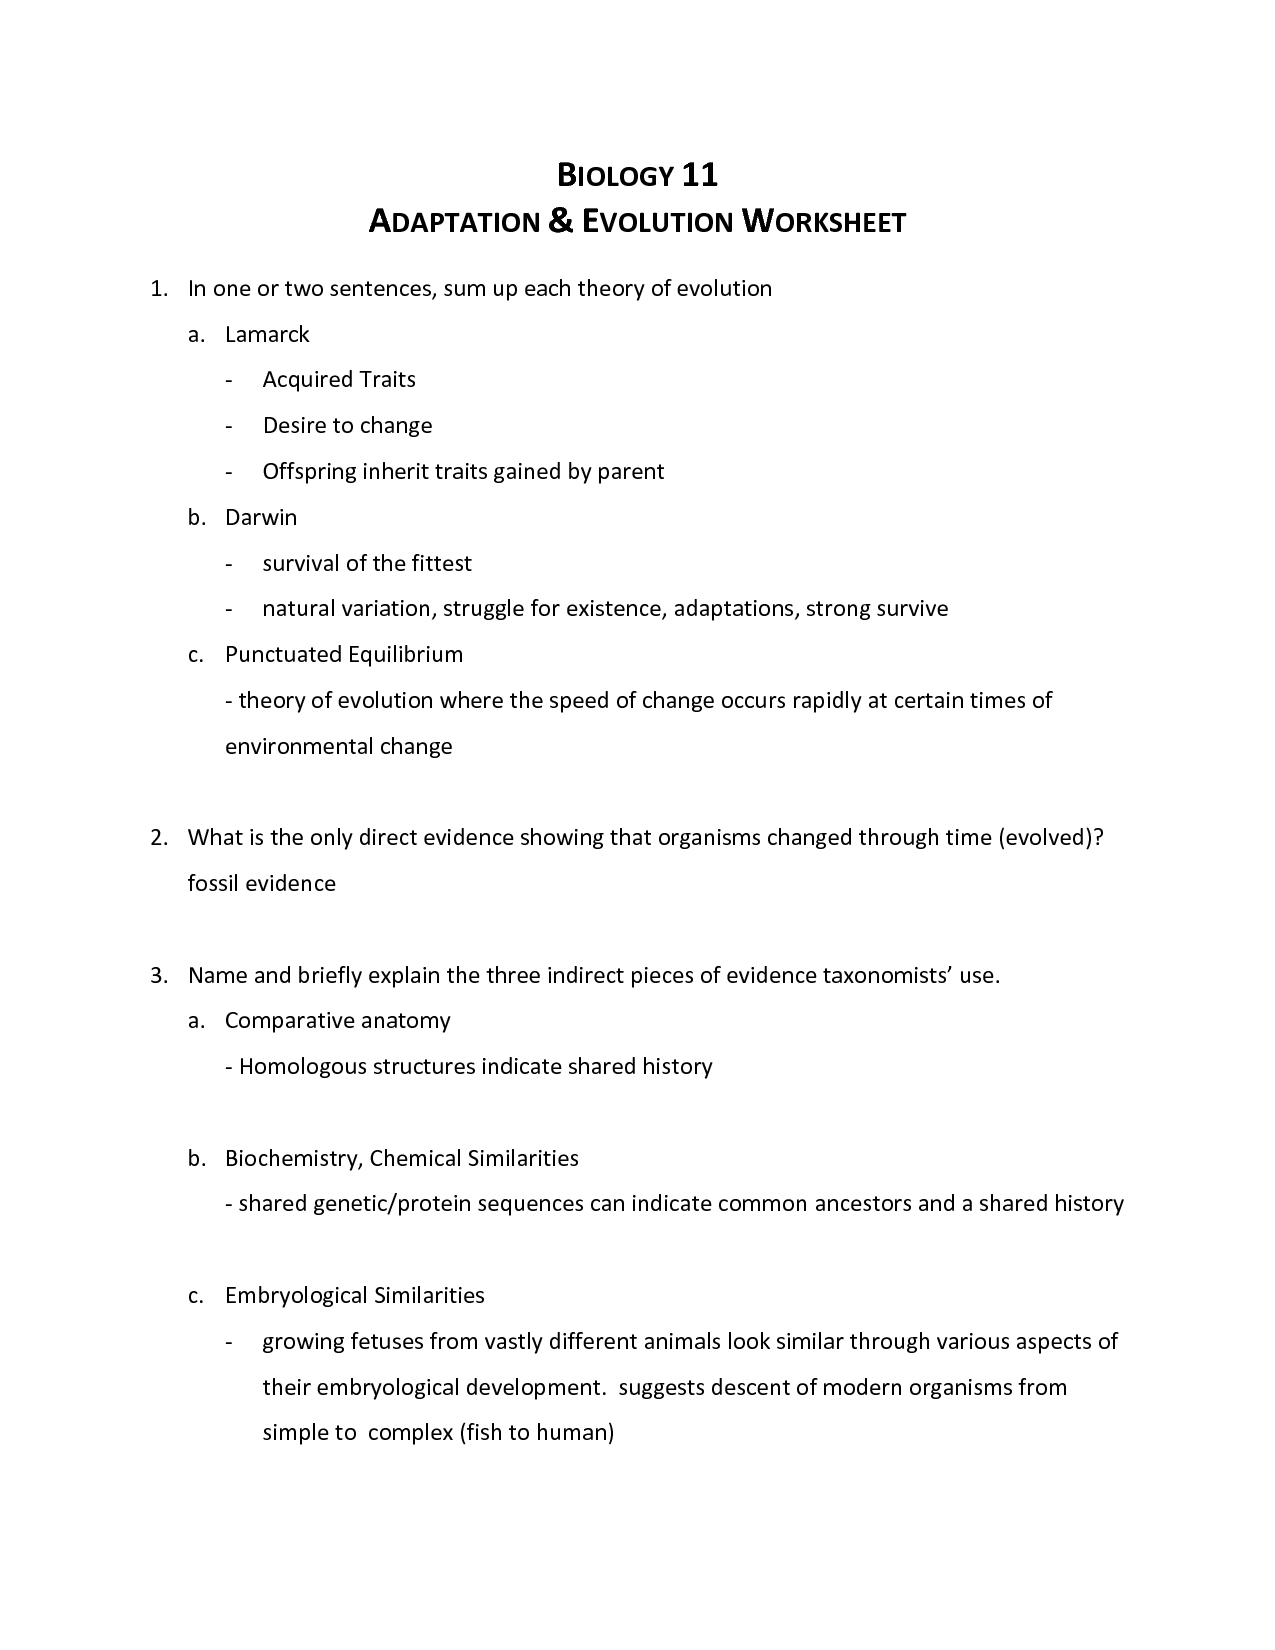 Evolution Worksheet With Answers